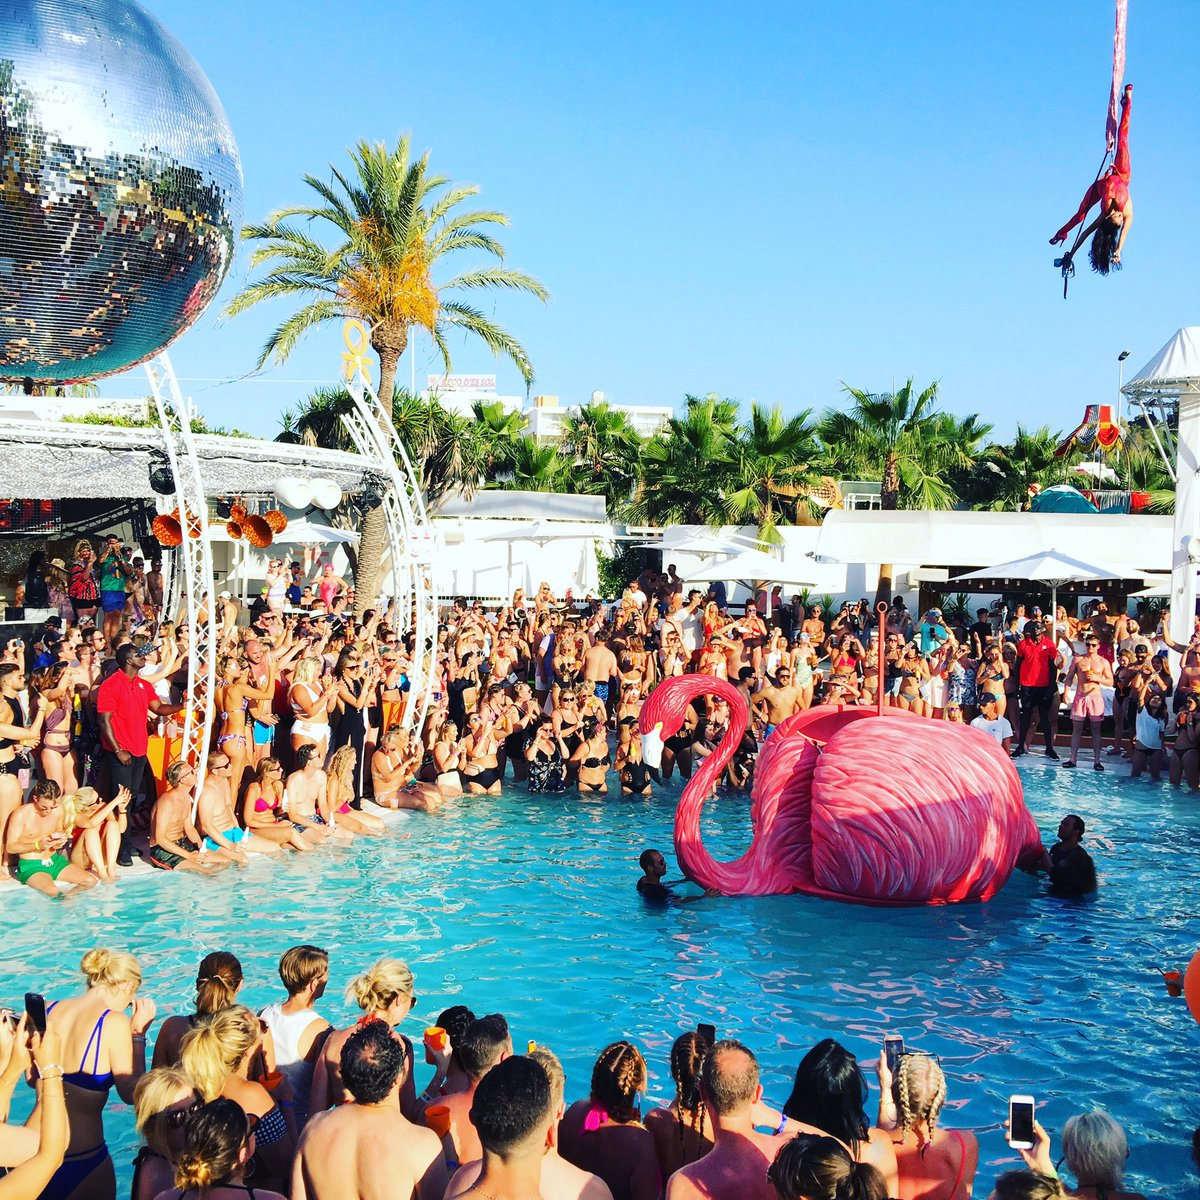 O Beach Ibiza On Twitter The Lovelylaurasax Is About To Perform Are You Ready Oceanbeachlife2017